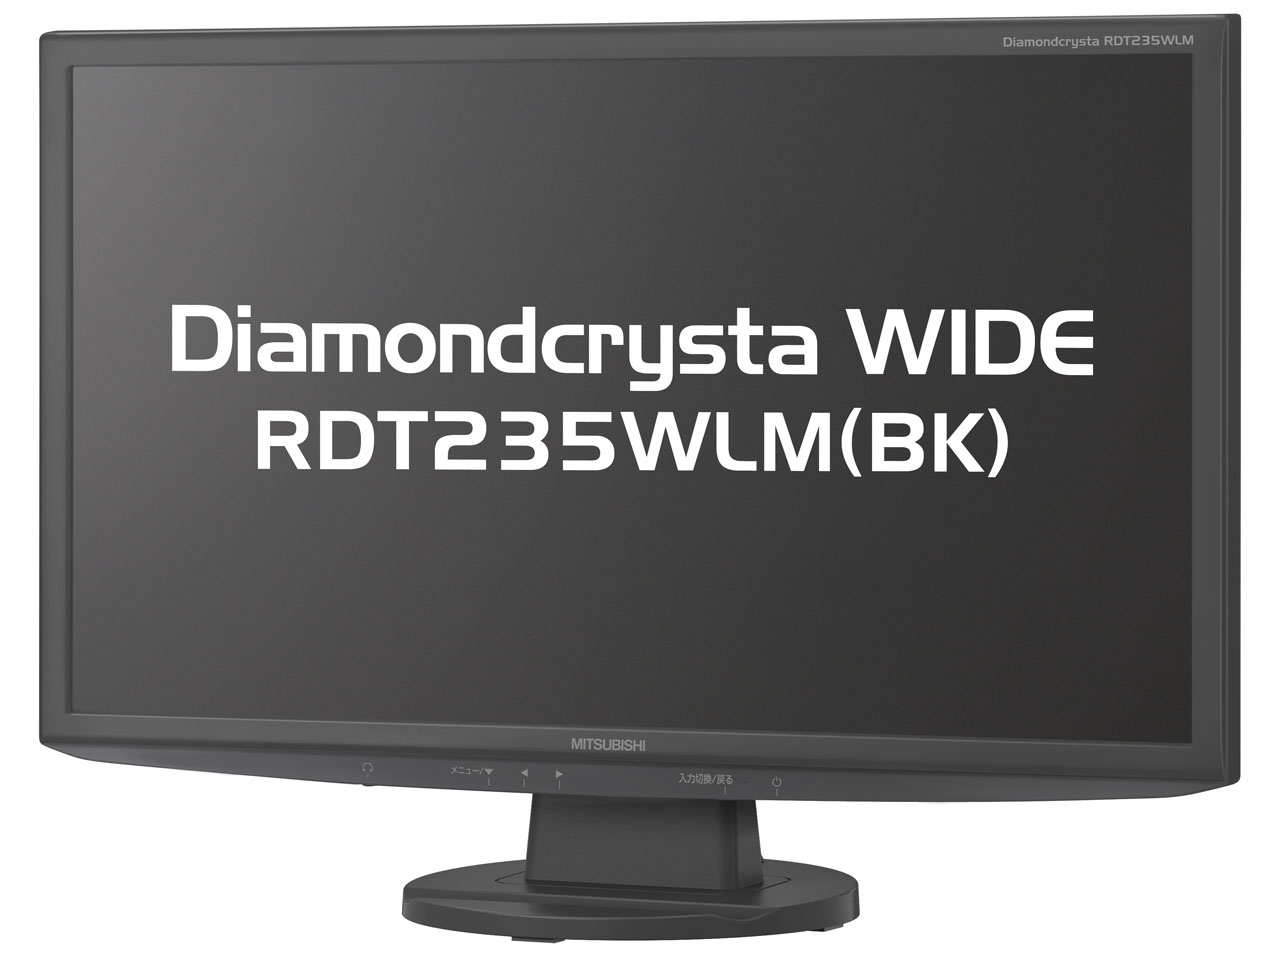 Diamondcrysta WIDE RDT235WLM(BK) [23インチ ブラック] /中古